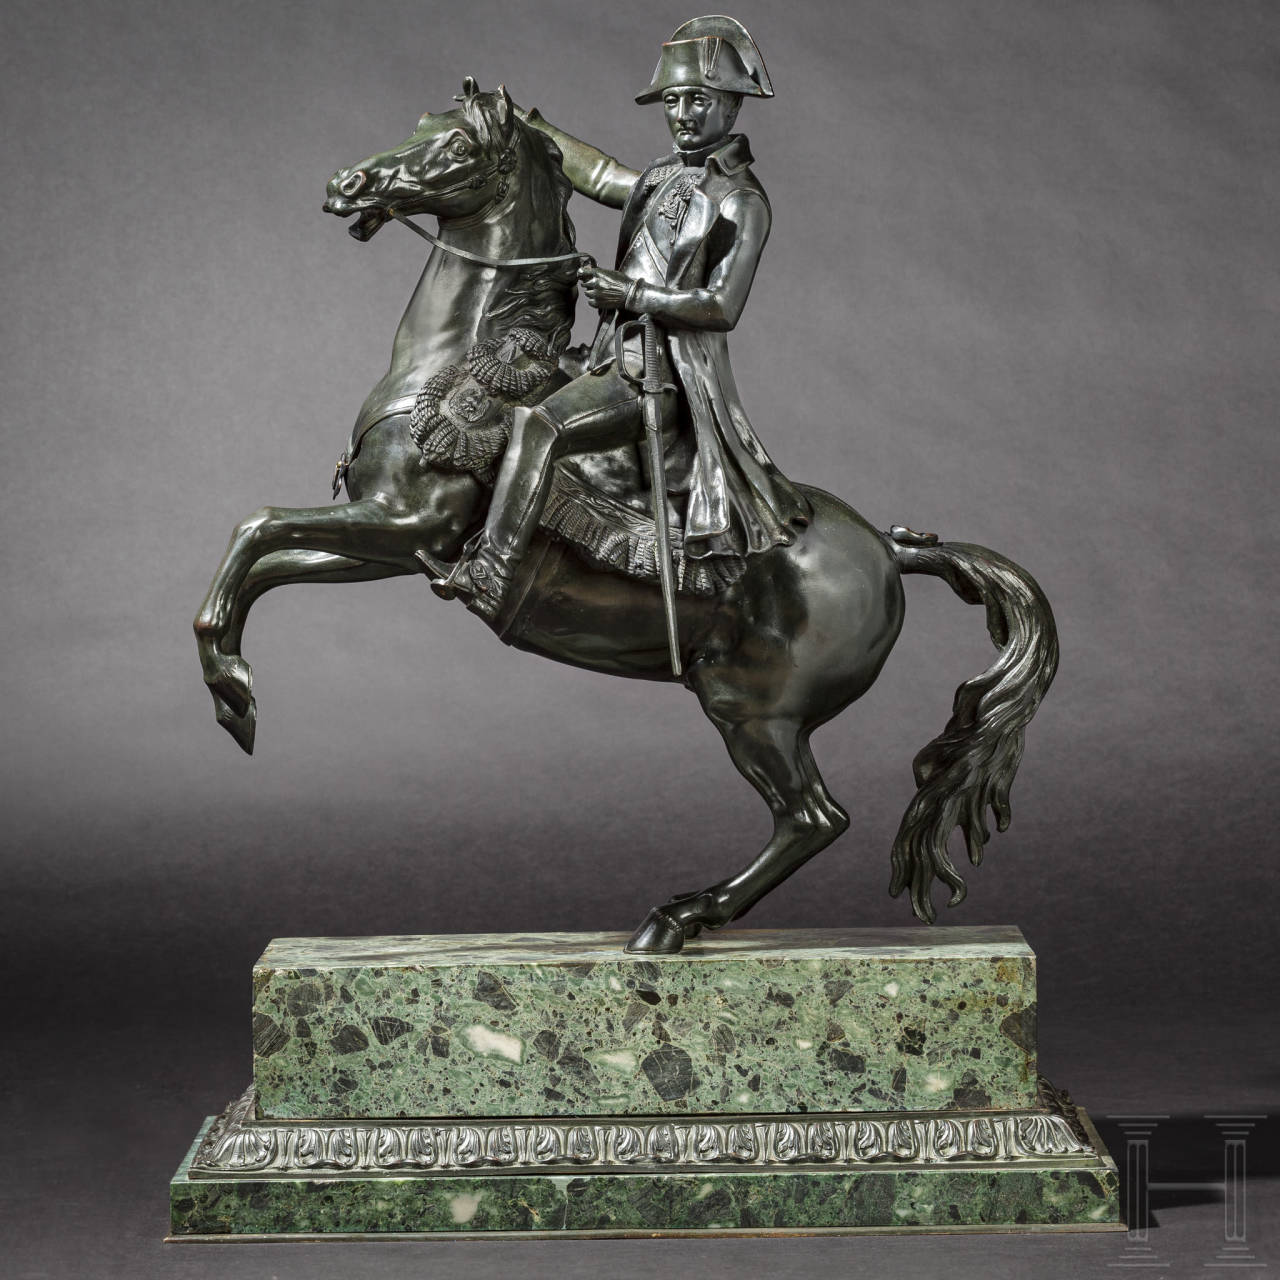 A monumental bronze figure of Emperor Napoleon I on a rampant horse